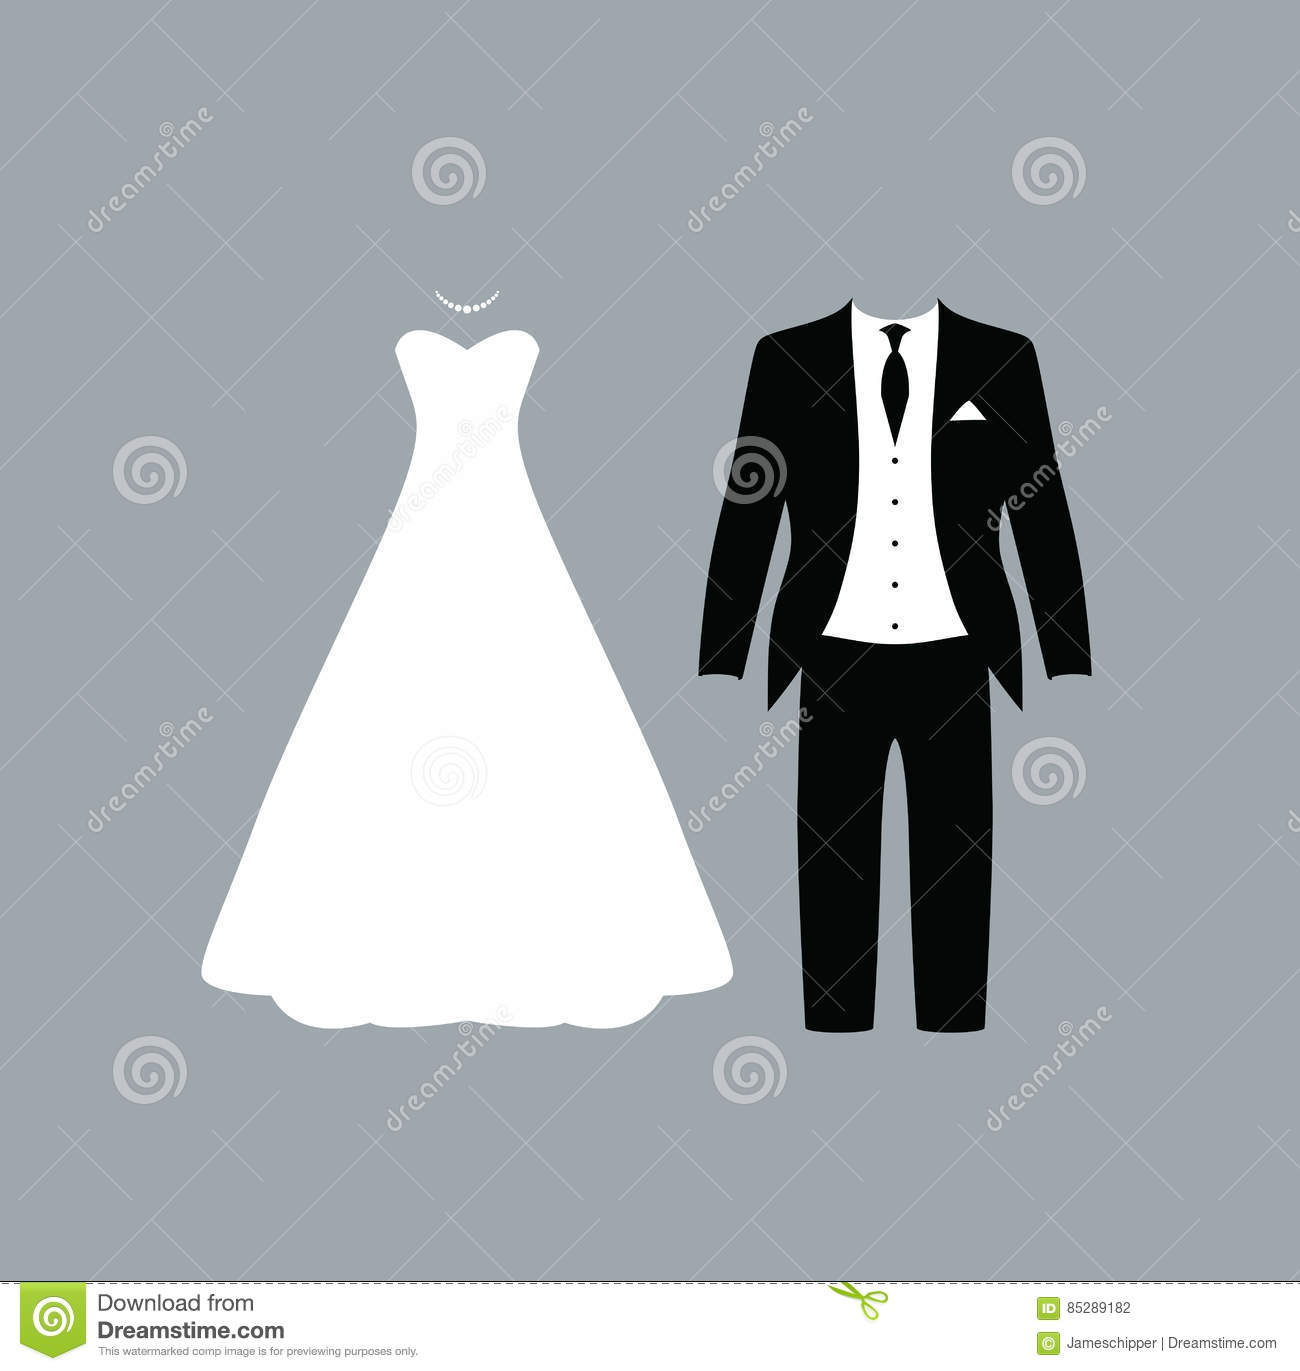 Wedding suit and dress stock vector. Illustration of card - 85289182